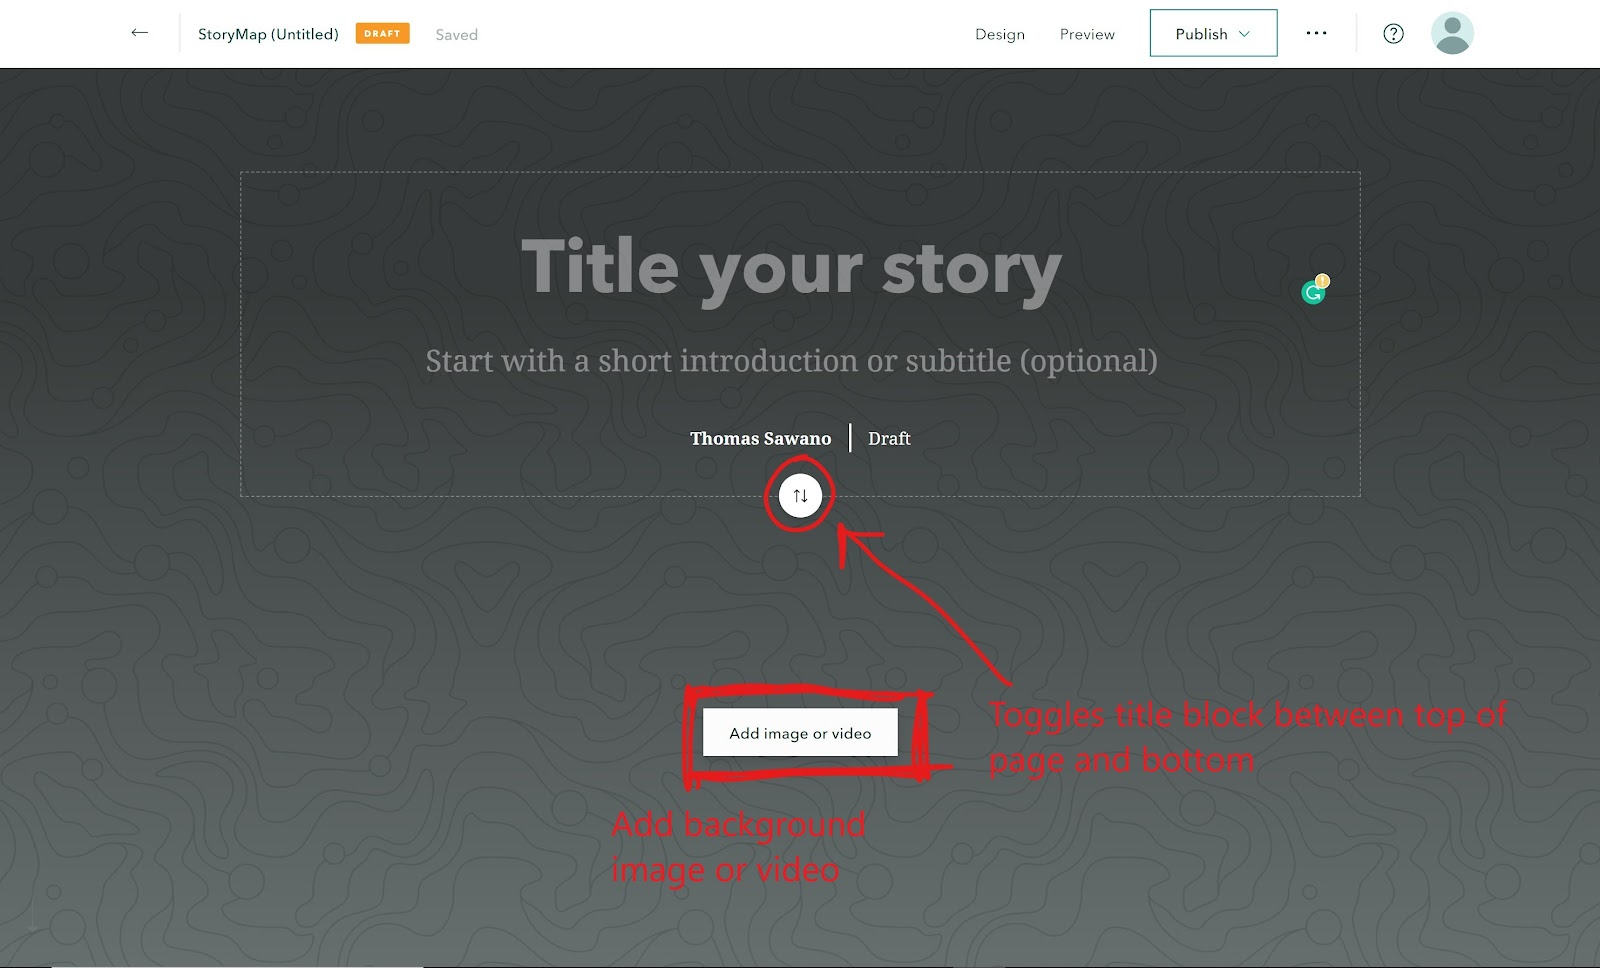 Title of your story page, with a button to add images